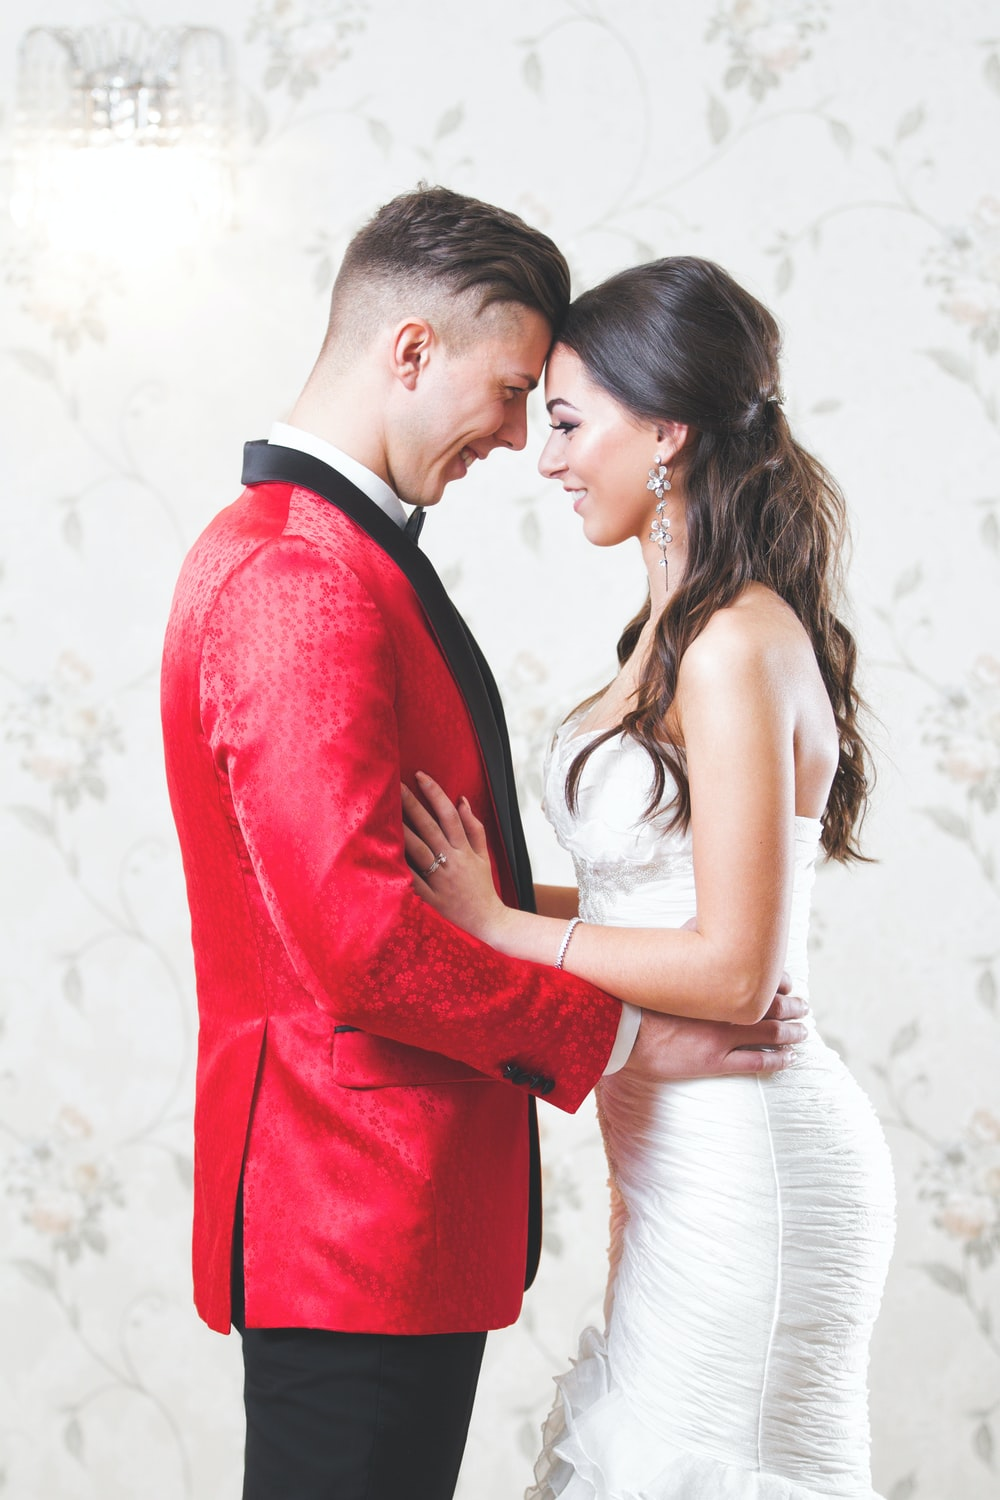 man in red suit kissing woman in white dress